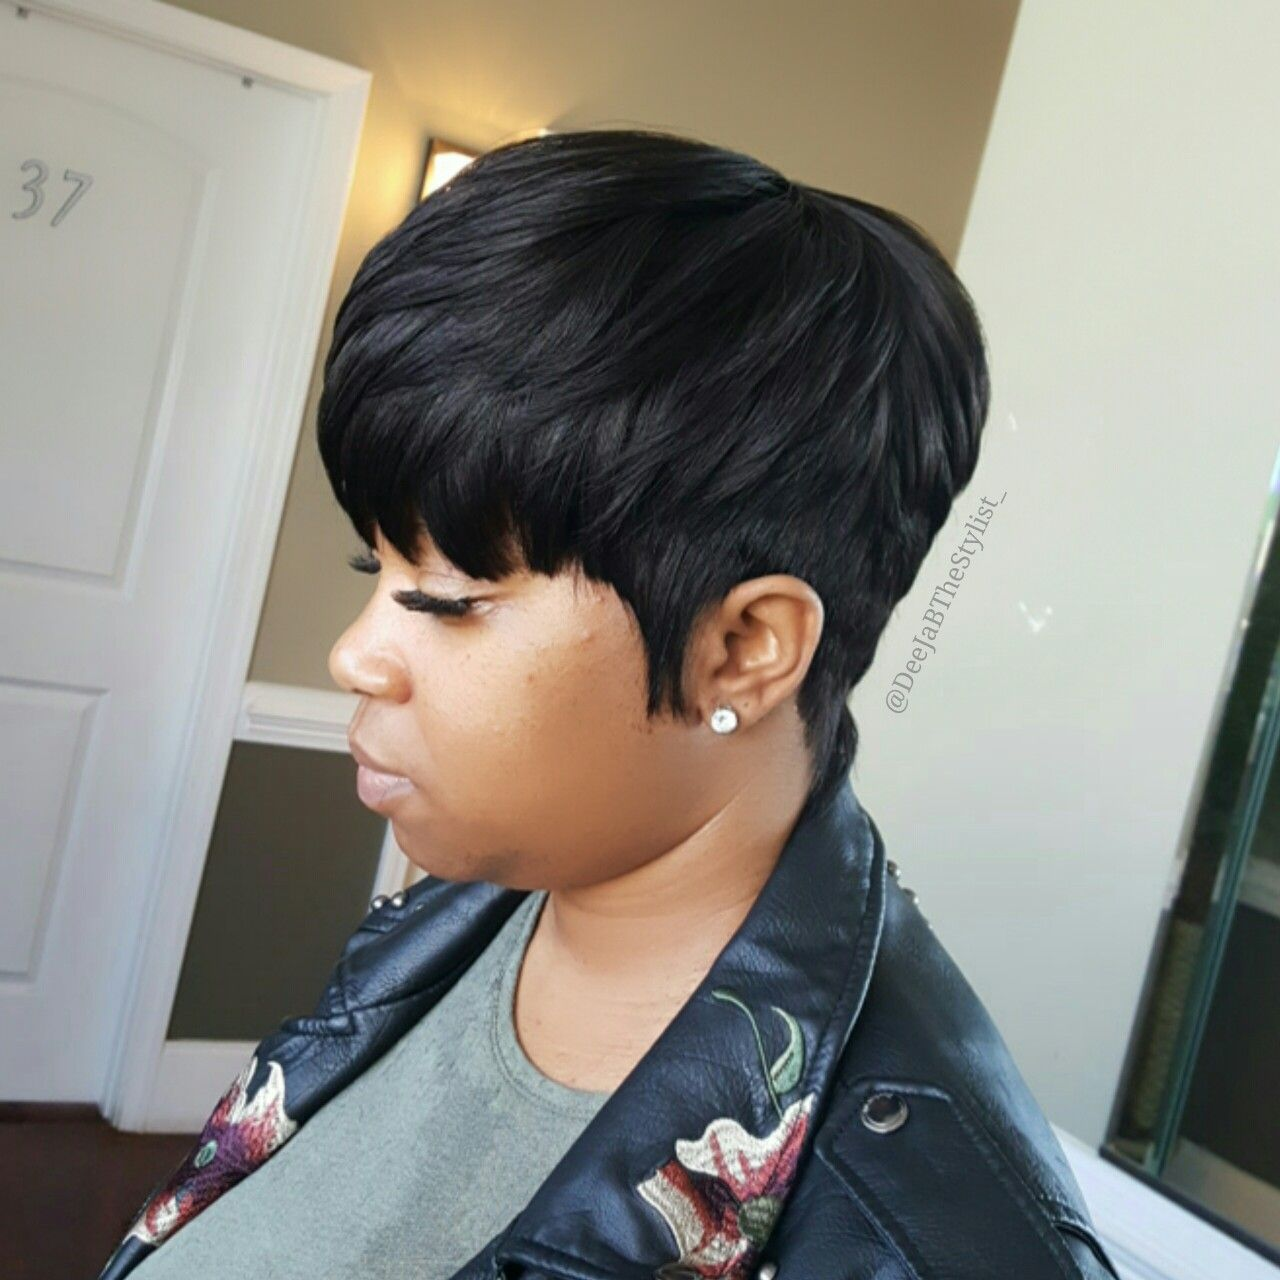 Pin By Laconyea Sisco On Stylists In 2020 Short Quick Weave Hairstyles Quick Weave Hairstyles Short Weave Hairstyles